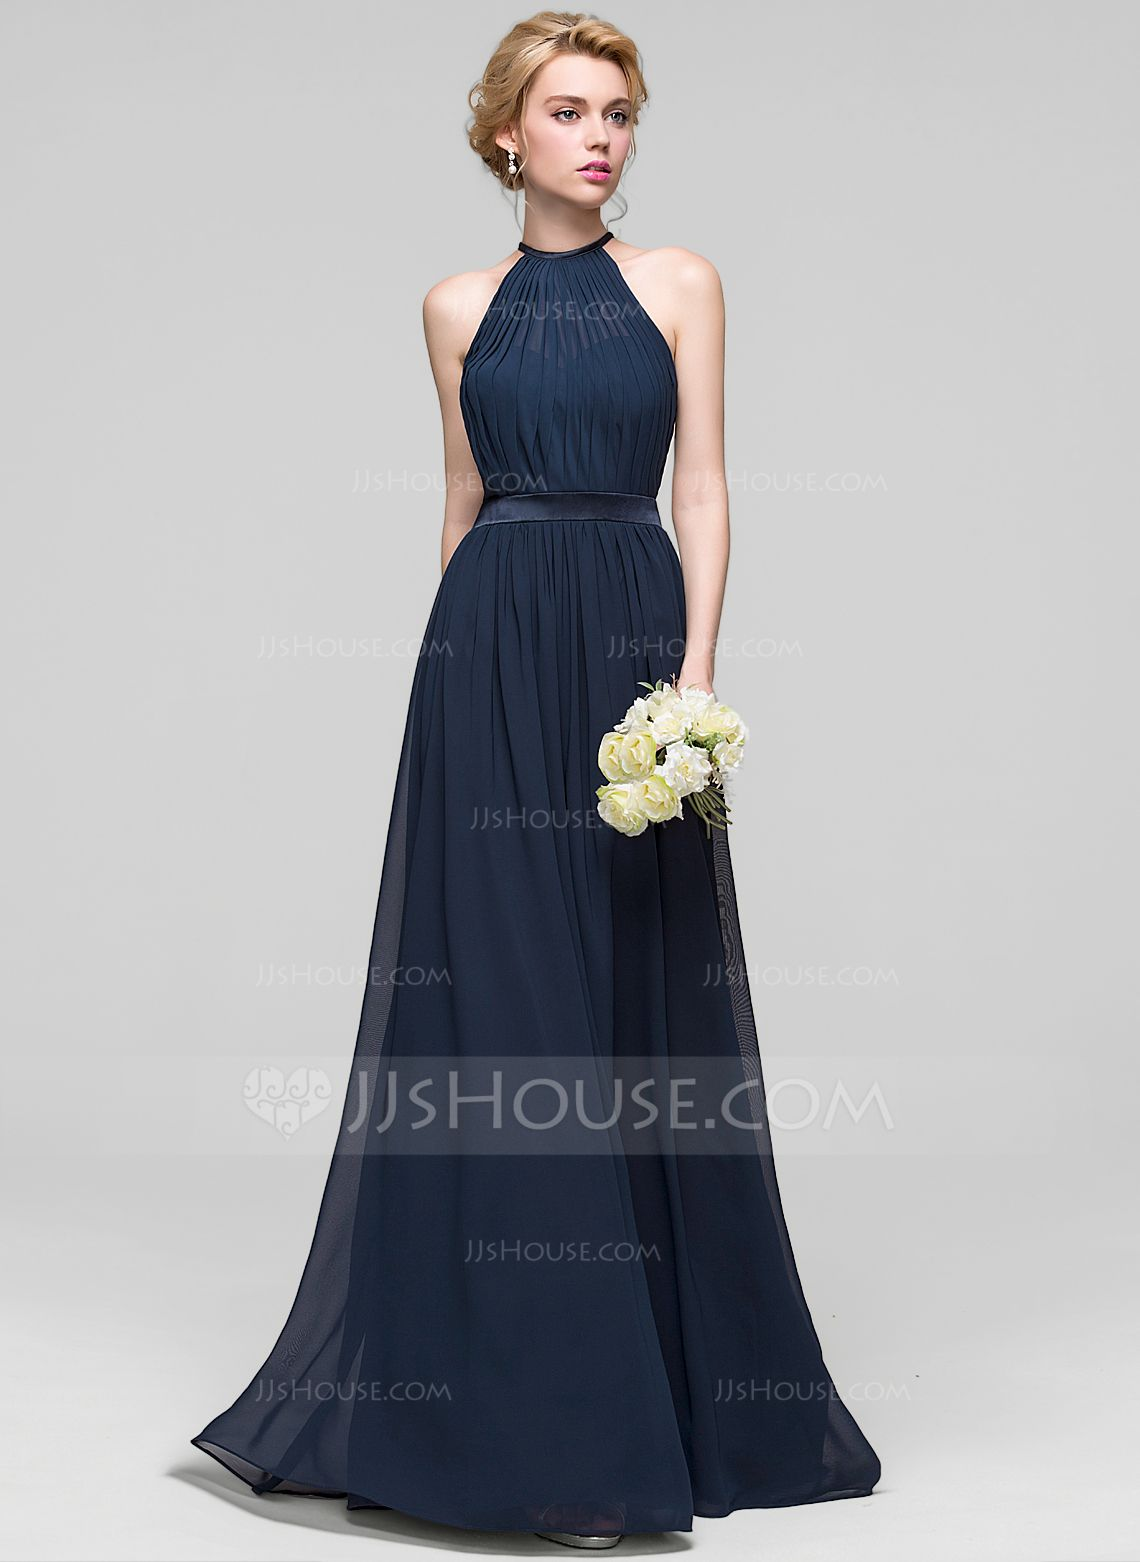 A-Line/Princess Scoop Neck Floor-Length Ruffle Zipper Up Spaghetti Straps Sleeveless No Dark Navy Spring Summer Fall General Plus Chiffon Bridesmaid Dress